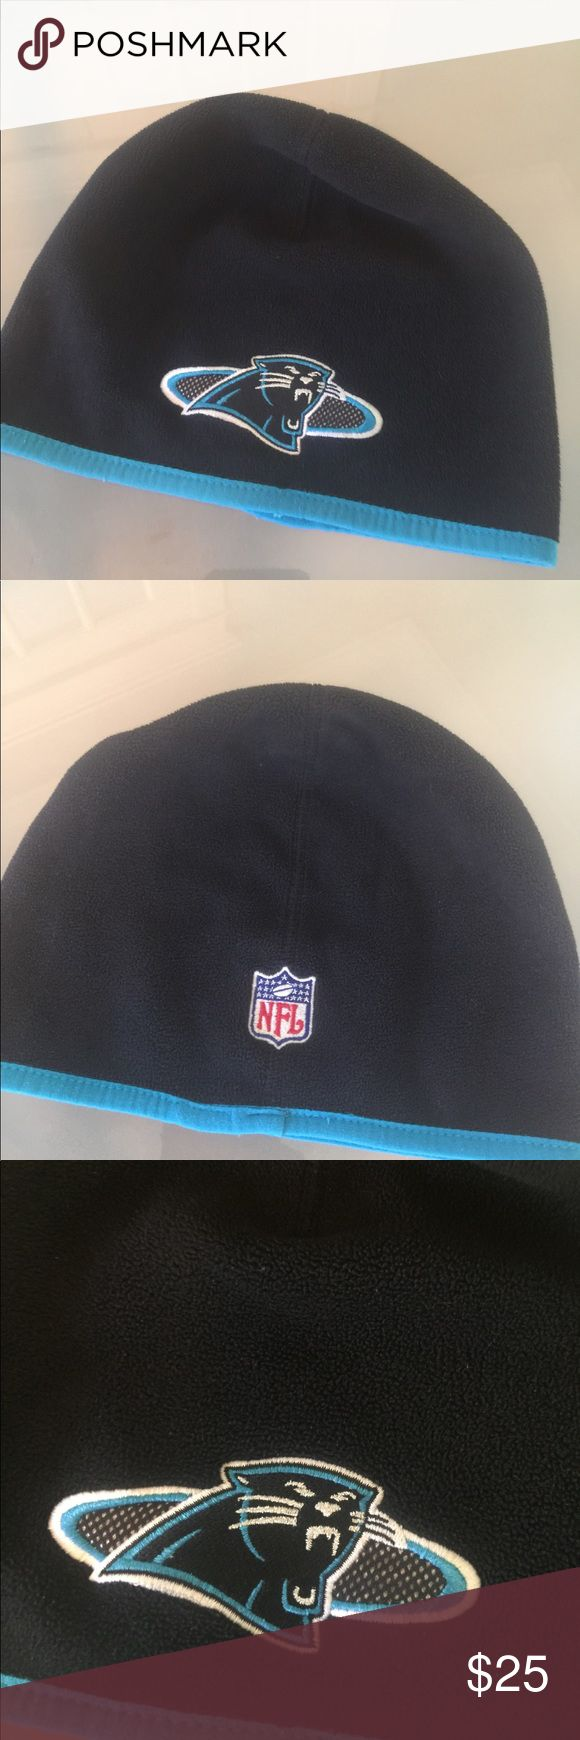 """NFL Carolina Panthers🏈🏈🏈 Fleece snug fit NFL Carolina Panthers 🏈🏈🏈 Fleece snug fit beanie type hat. Black with aqua, white and silver embroidered design. 10"""" across head & 8"""" from rim to top of hat, all approx. minor wear from normal use. Official NFL gear!!🏈 NFL Accessories Hats"""